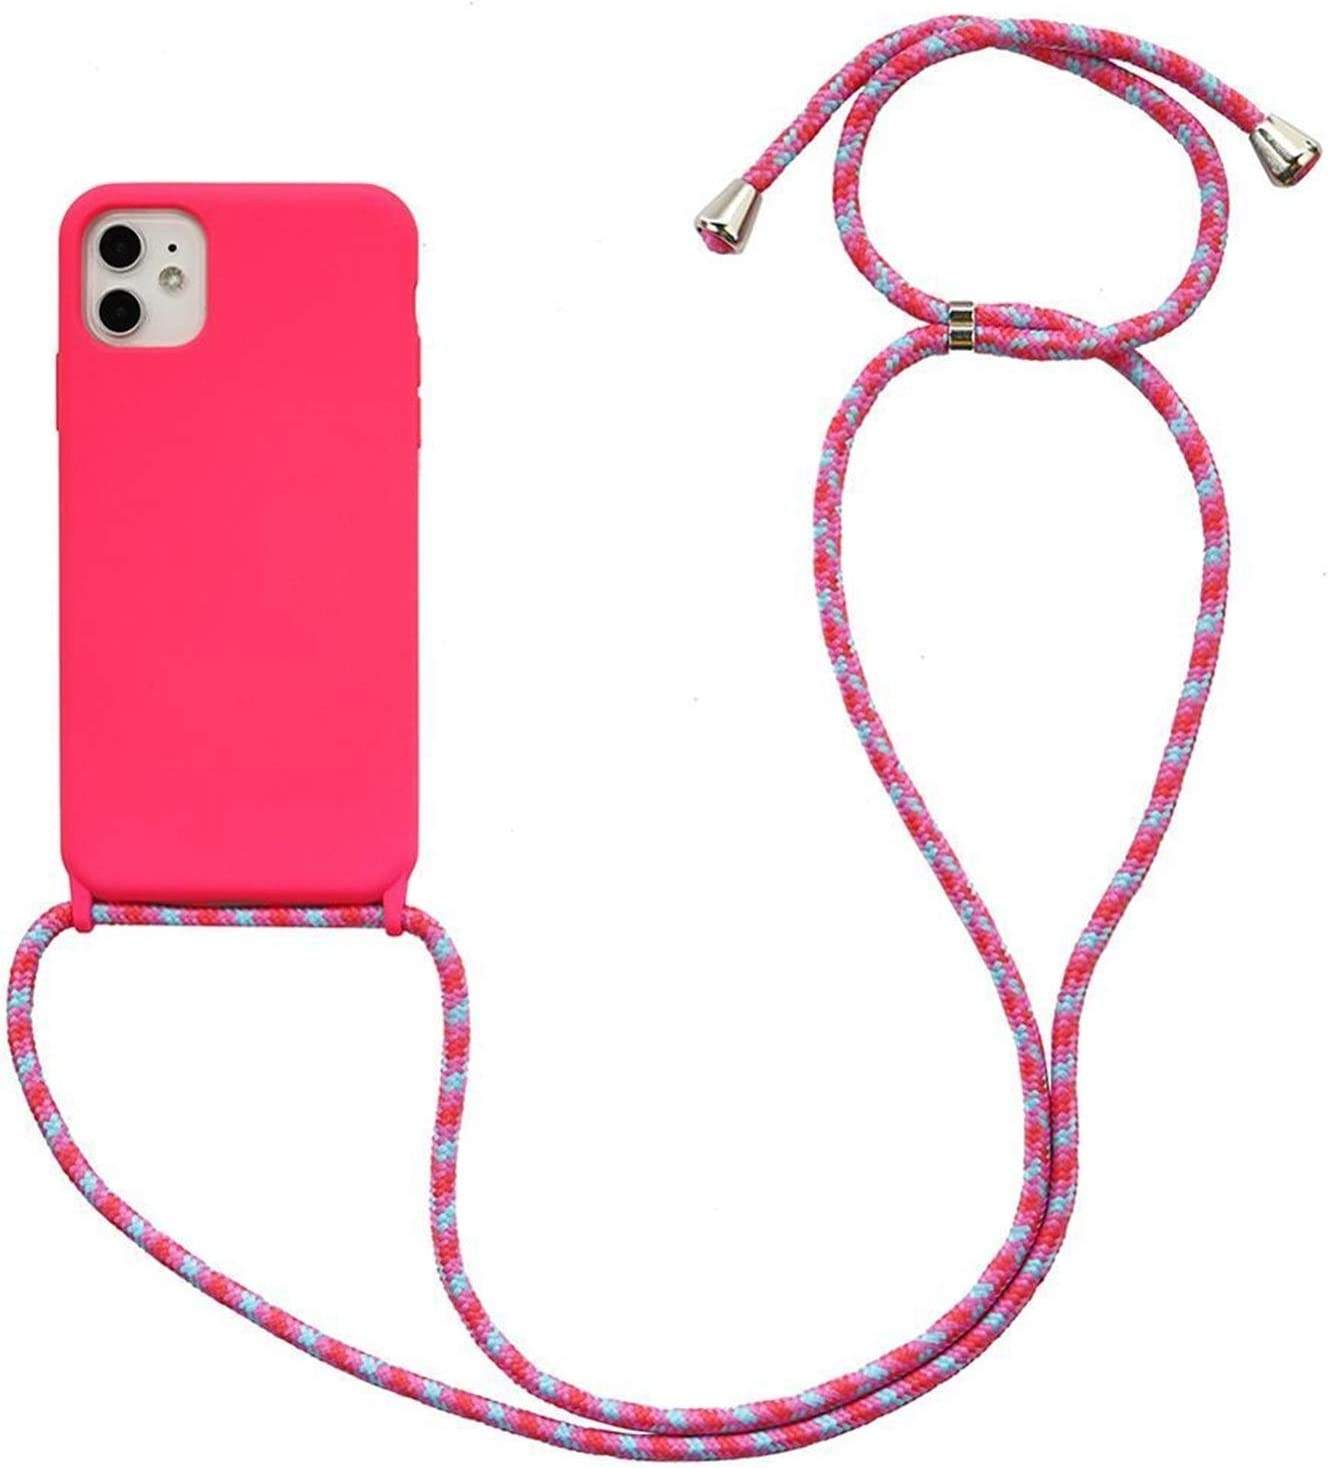 Youpin Crossbody Necklace Holder Phone Case for iPhone 11 pro XS max Xr 6s 7 8 Plus Lanyard Silicone Case Cover with Cord Strap Rope (Color : Bright Pink02, Material : for 12 pro max)